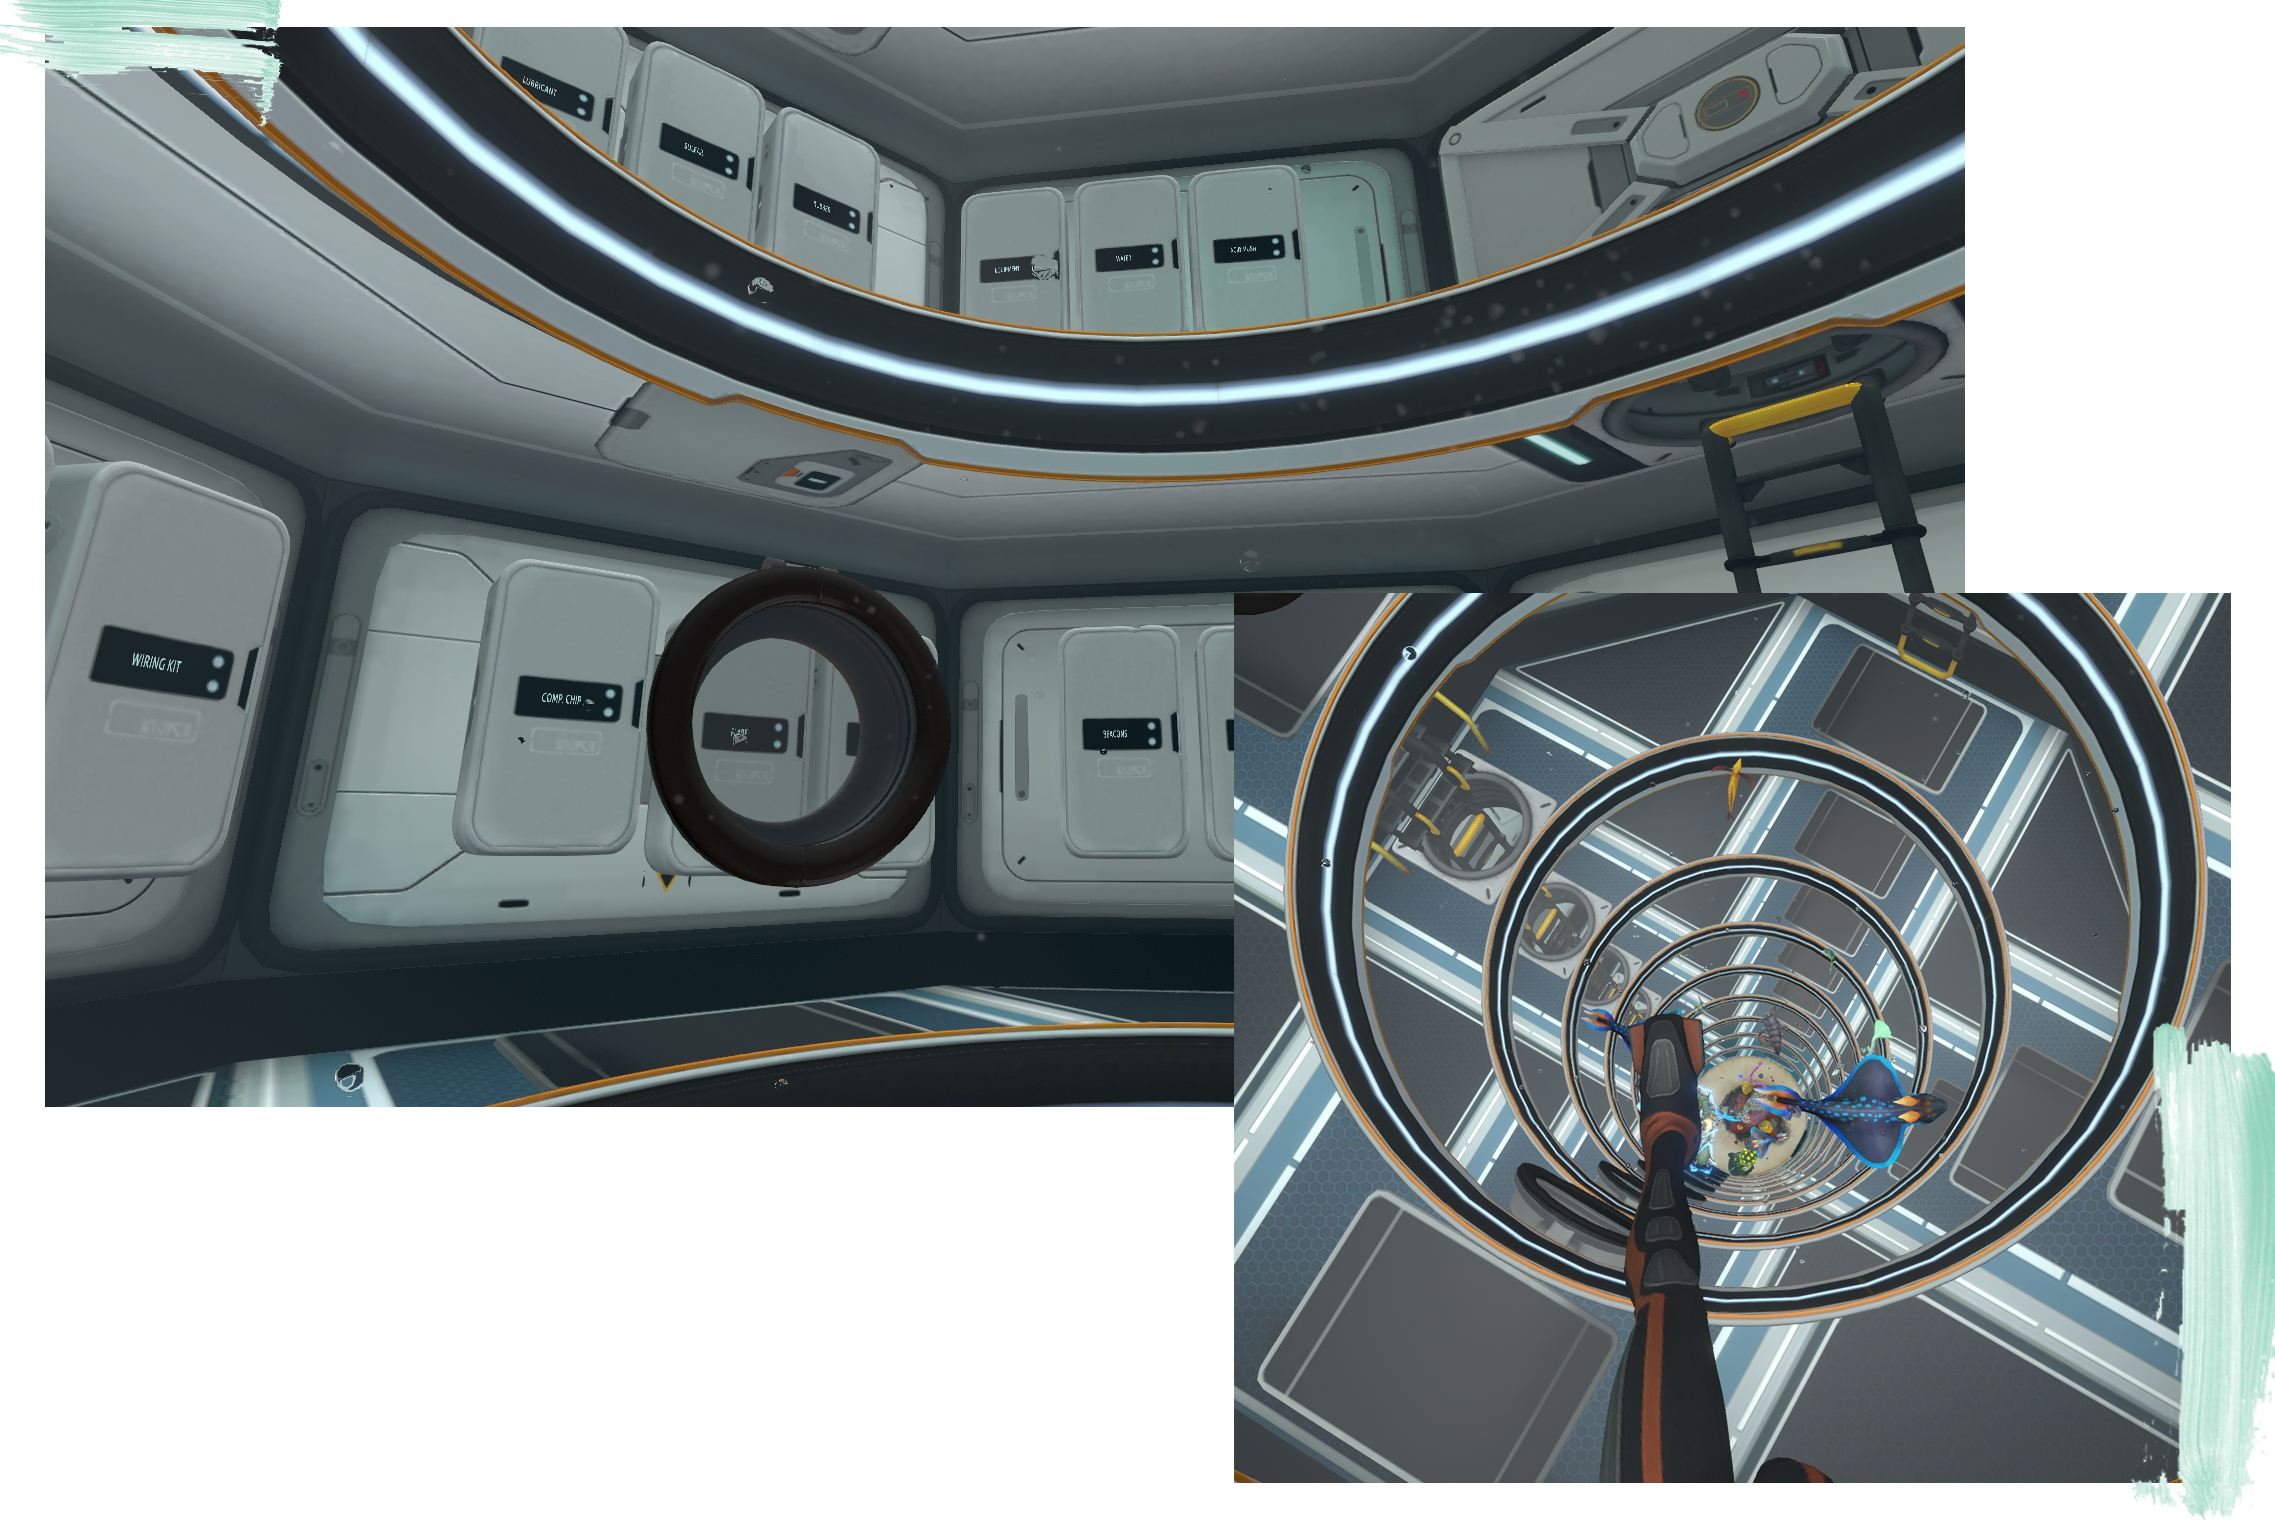 Subnautica Tour Of My Main Base Mae Polzine Built a scanner room and hatch and solar panels where the hatch is positioned to avoid conflicts. subnautica tour of my main base mae